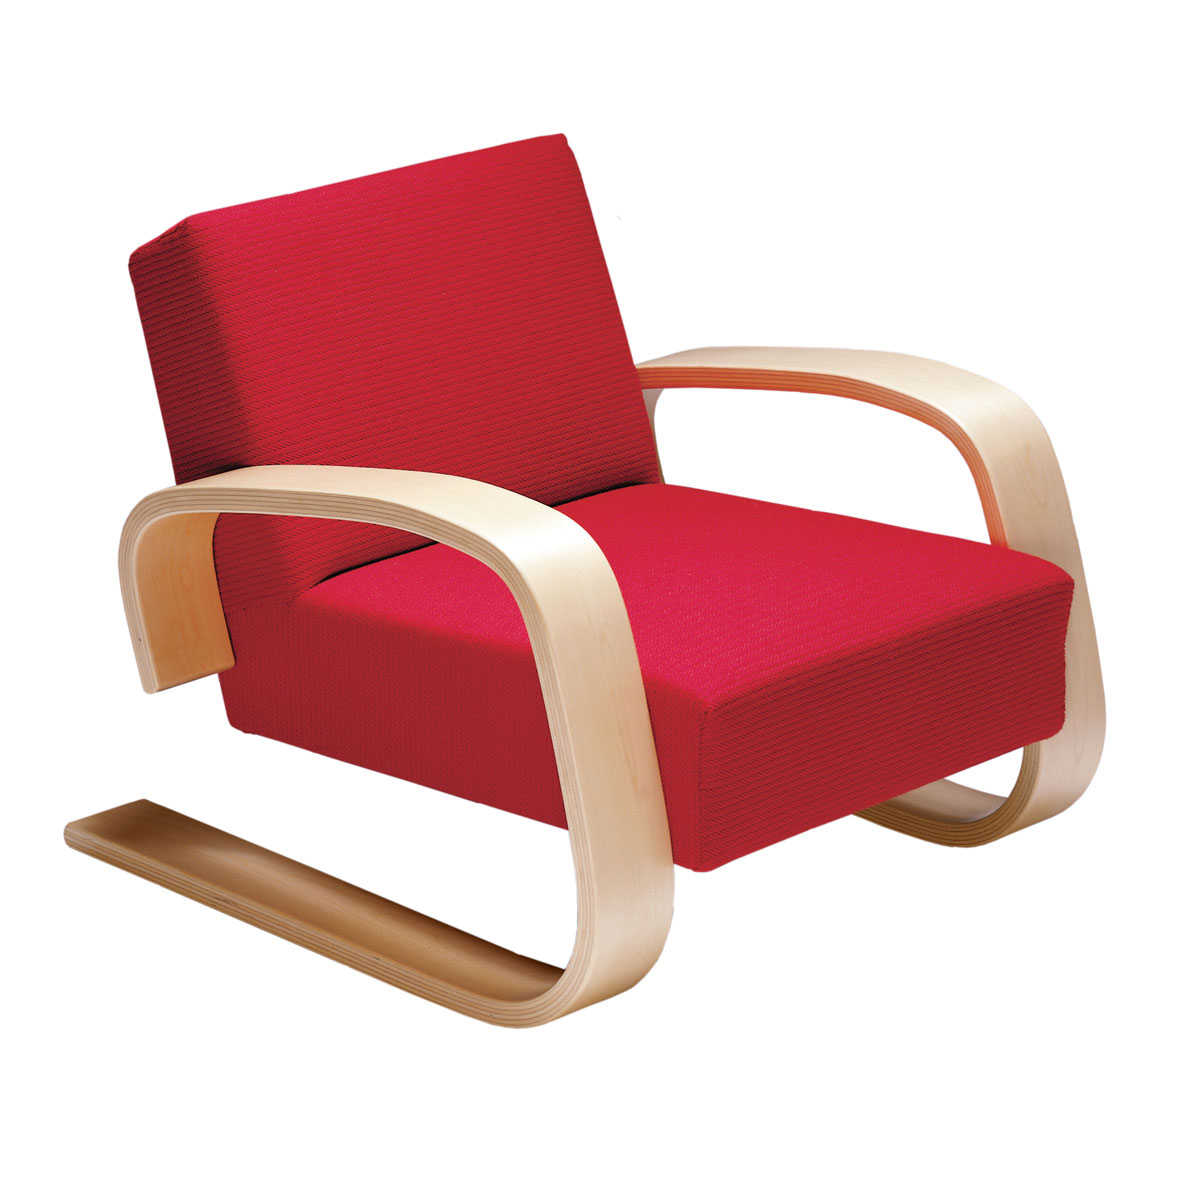 Prime Artek Alvar Aalto 400 Lounge Chair Fabric Upholstery Home Interior And Landscaping Ologienasavecom